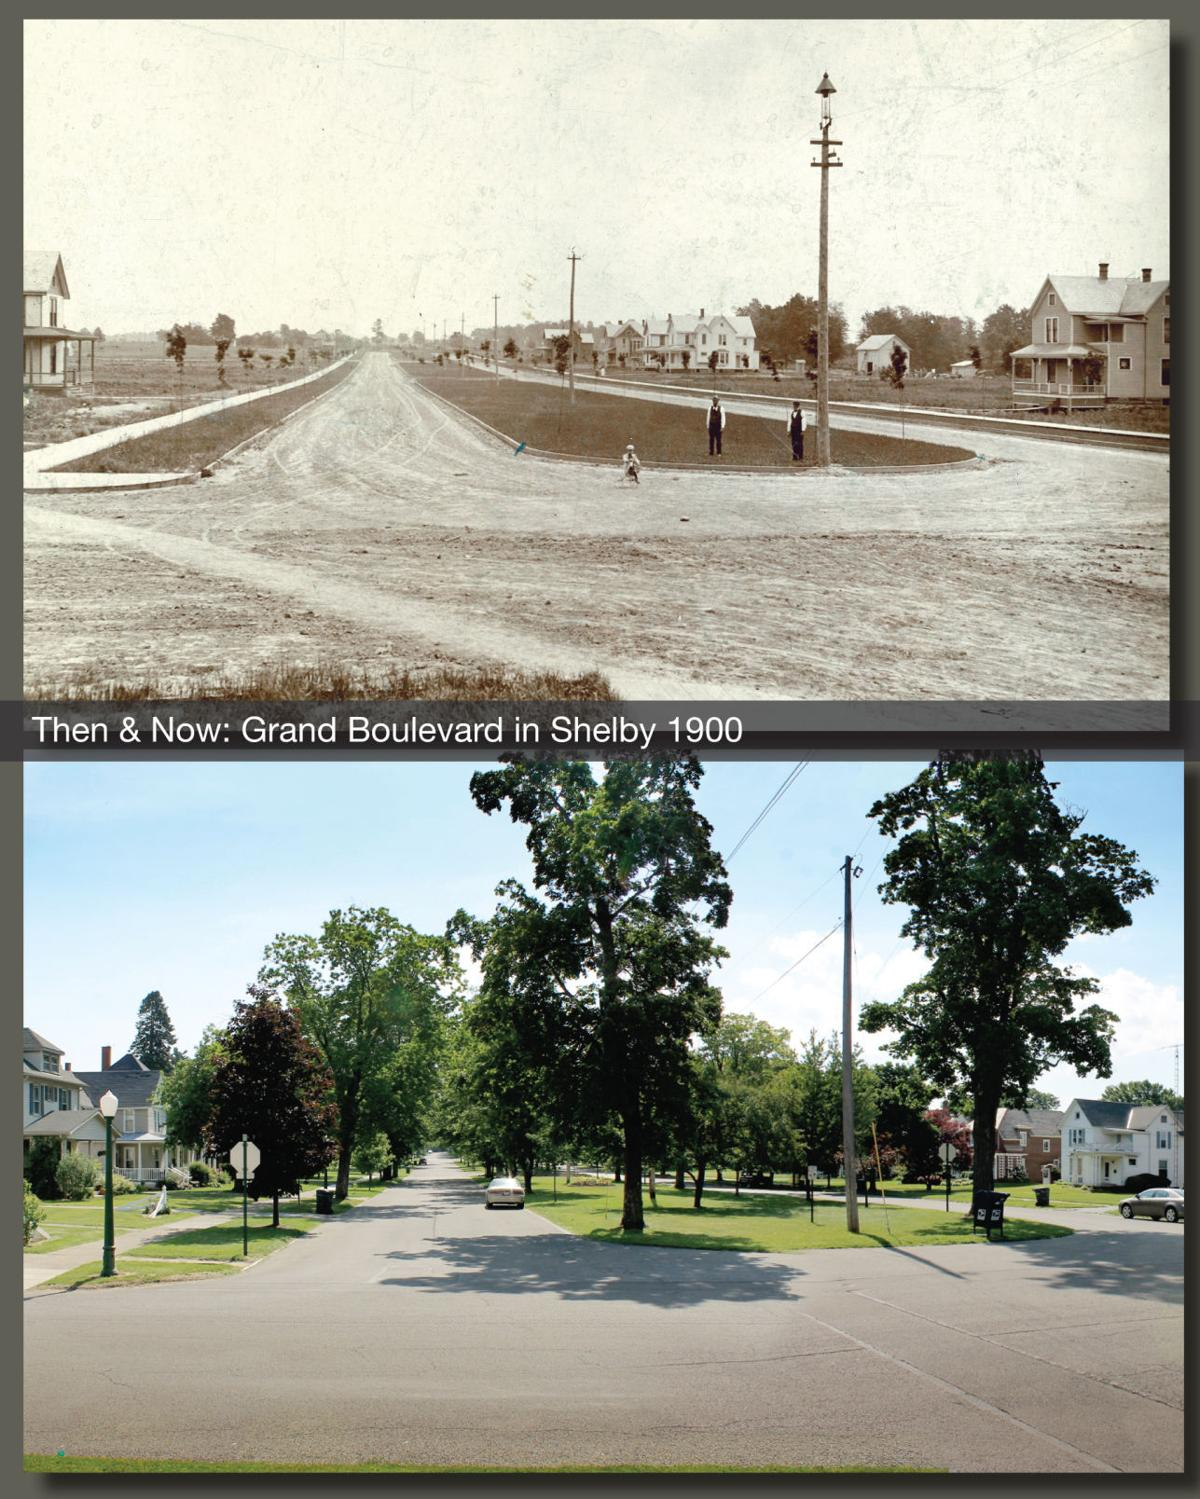 Then & Now: Grand Boulevard in Shelby 1900